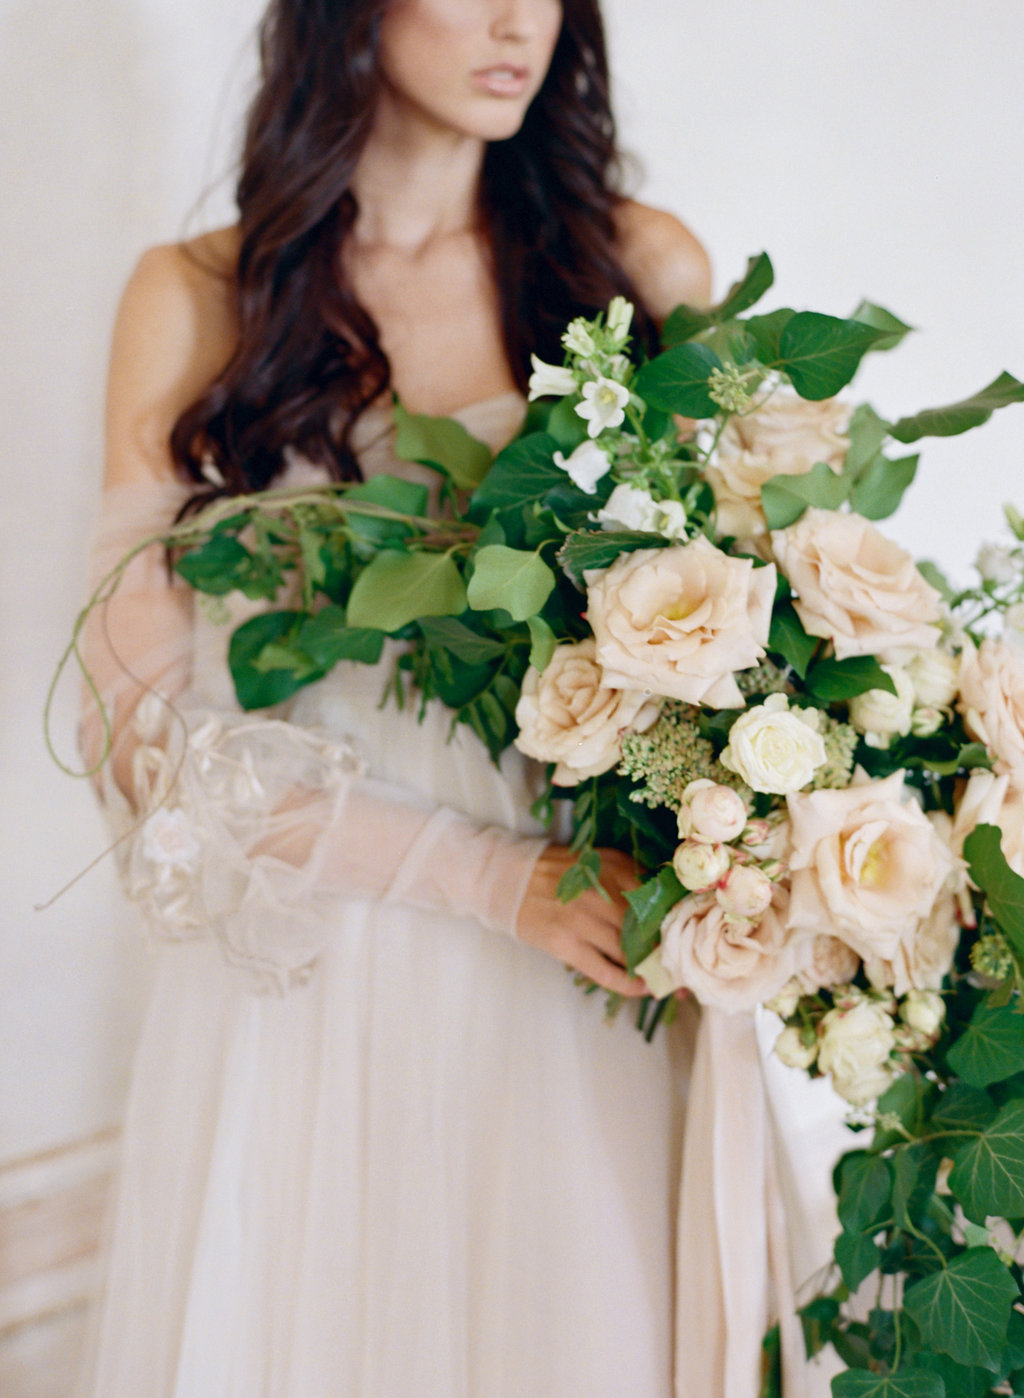 VillaArconatiItalyWeddingKatieGrantPhoto(194of339).jpg